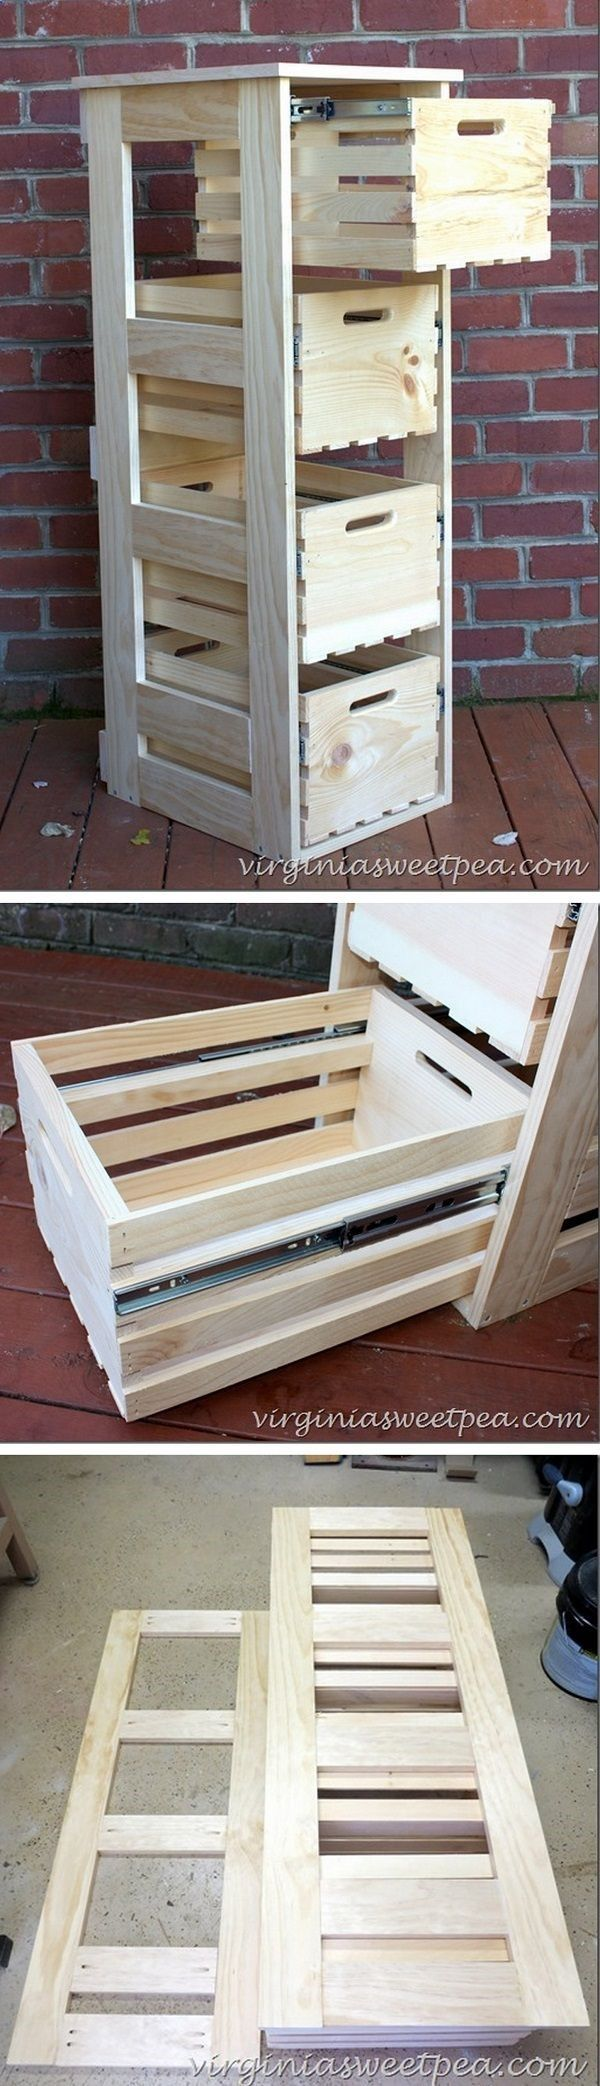 Shed DIY - Check out this easy idea on how to build a #DIY crate cabinet with sliding doors for storage and #homedecor on a #budget #wood #project Industry Standard Design Now You Can Build ANY Shed In A Weekend Even If You've Zero Woodworking Experience!